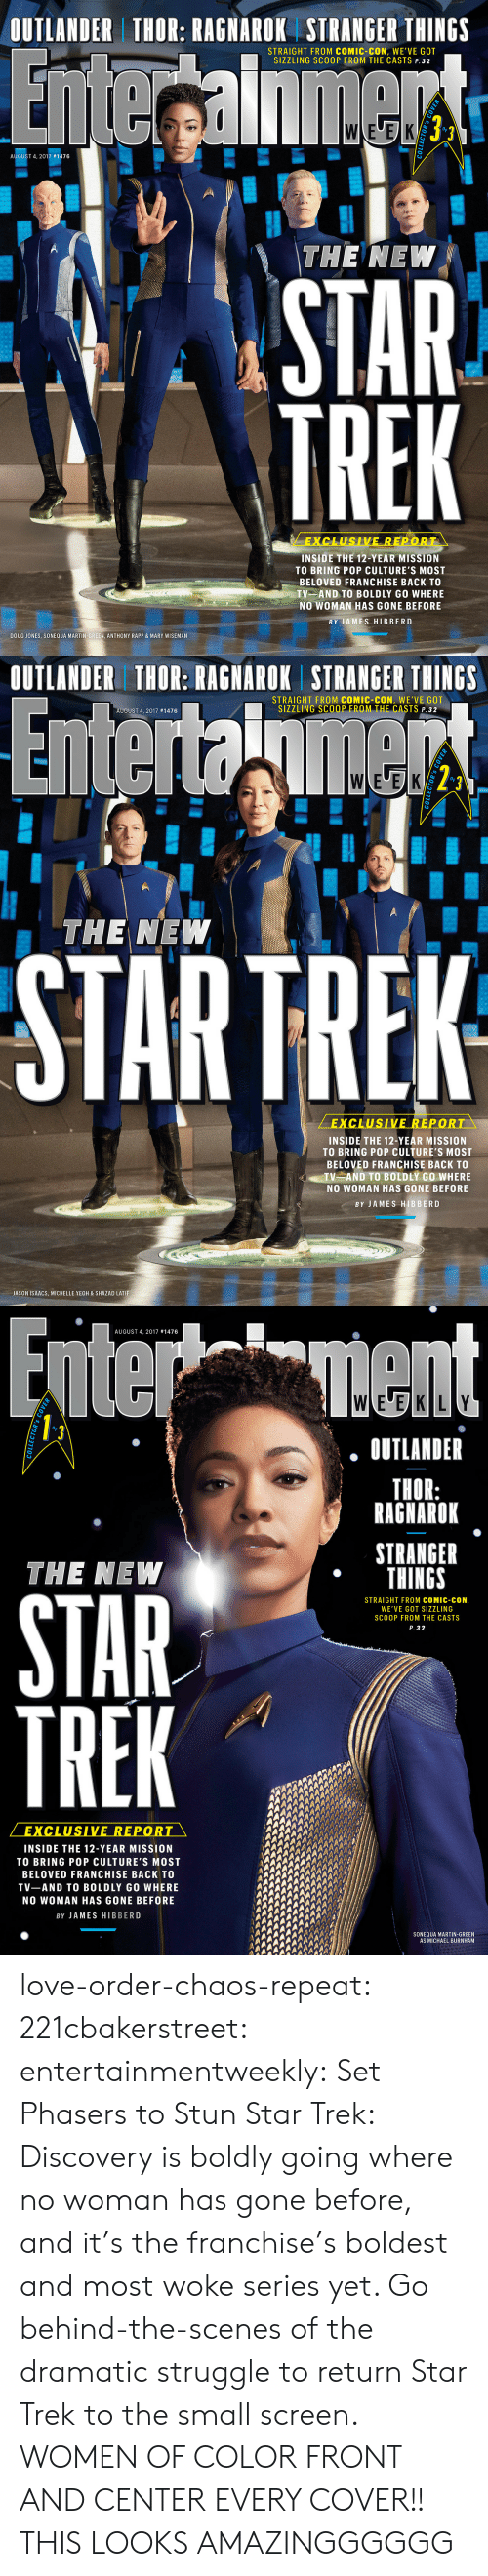 Michellee: OUTLANDER THOR: RAGNAROK STRANGER THINGS  STRAIGHT FROM COMIC-CON, WE'VE GOT  SIZZLING SCOOP FROM THE CASTS P. 32  oF  AUGUST 4, 2017 #1476  THE NEW  STAR  TREK  EXCLUSIVE REPOR  INSIDE THE 12-YEAR MISSION  TO BRING POP CULTURE'S MOST  BELOVED FRANCHISE BACK TO  TV AND TO BOLDLY GO WHERE  NO WOMAN HAS GONE BEFORE  BY JAMES HIBBERD  DOUG JONES, SONEQUA MARTIN-GREEN, ANTHONY RAPP & MARY WISEMAN   OUTLANDER THOR: RAGNAROK STRANGER THINGS  STRAIGHT FROM COMIC-CON, WE'VE GOT  SIZZLING SCOOP FROM THE CASTS P. 32  AUGUST 4, 2017 #1476  WLEUEK  2^  0  THE NEW  STARTREK  EXCLUSIVE REPORT  INSIDE THE 12-YEAR MISSION  TO BRING POP CULTURE'S MOST  BELOVED FRANCHISE BACK TO  TV AND TO BOLDLY GO WHERE  NO WOMAN HAS GONE BEFORE  BY JAMES HIBBERD  JASON ISAACS, MICHELLE YEOH & SHAZAD LATIE   AUGUST 4, 2017 #1476  0  OUTLANDER  THOR:  RAGNAROK  STRANGER  THINGS  THE NEW  8  STRAIGHT FROM COMIC-CON,  WE'VE GOT SIZZLING  SCOOP FROM THE CASTS  P. 32  STAR  VE REPOR  INSIDE THE 12-YEAR MISSION  TO BRING POP CULTURE'S MOST  BELOVED FRANCHISE BACK TO  TV-AND TO BOLDLY GO WHERE  NO WOMAN HAS GONE BEFORE  BY JAMES HIBBERD  SONEQUA MARTIN-GREEN  AS MICHAEL BURNHAM  5 love-order-chaos-repeat: 221cbakerstreet:  entertainmentweekly:  Set Phasers to Stun Star Trek: Discovery is boldly going where no woman has gone before, and it's the franchise's boldest and most woke series yet. Go behind-the-scenes of the dramatic struggle to return Star Trek to the small screen.  WOMEN OF COLOR FRONT AND CENTER EVERY COVER!!  THIS LOOKS AMAZINGGGGGG